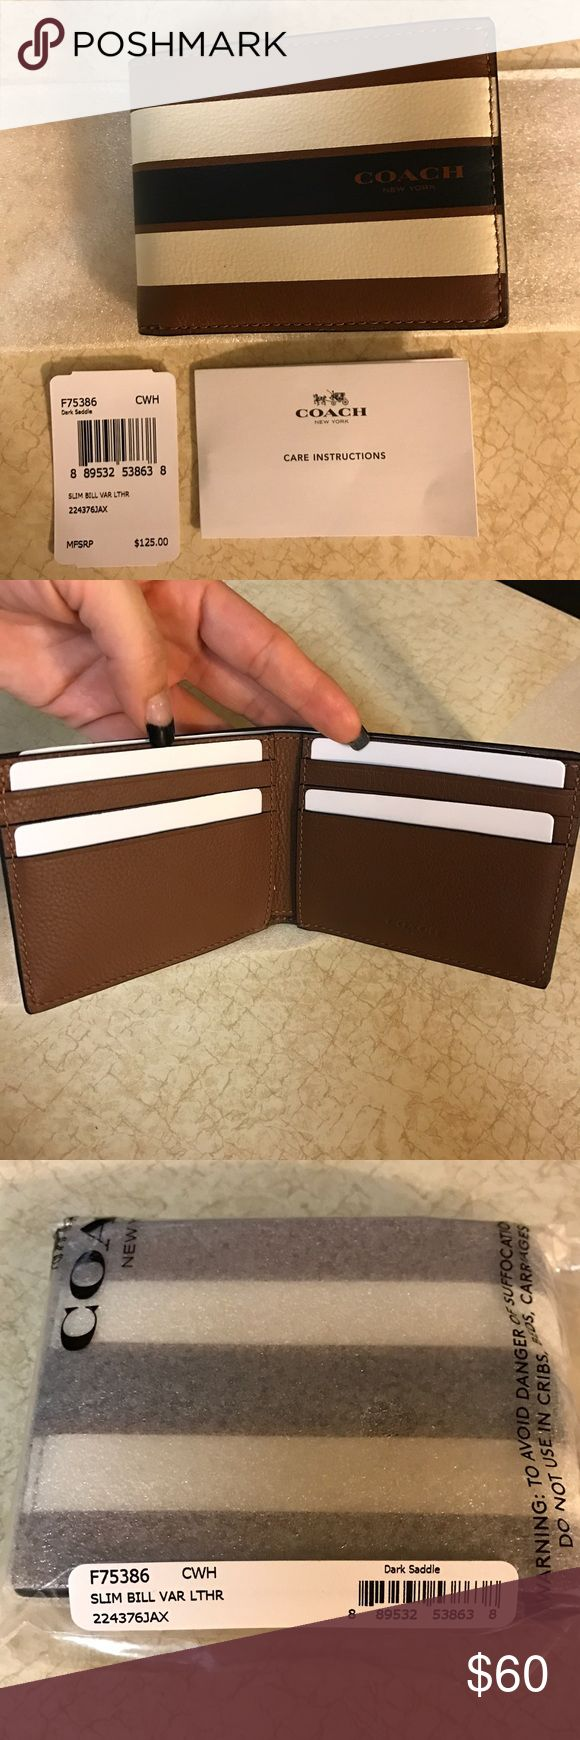 Coach Men wallet Nwt coach slim wallet in varsity leather, box included. Coach Bags Wallets